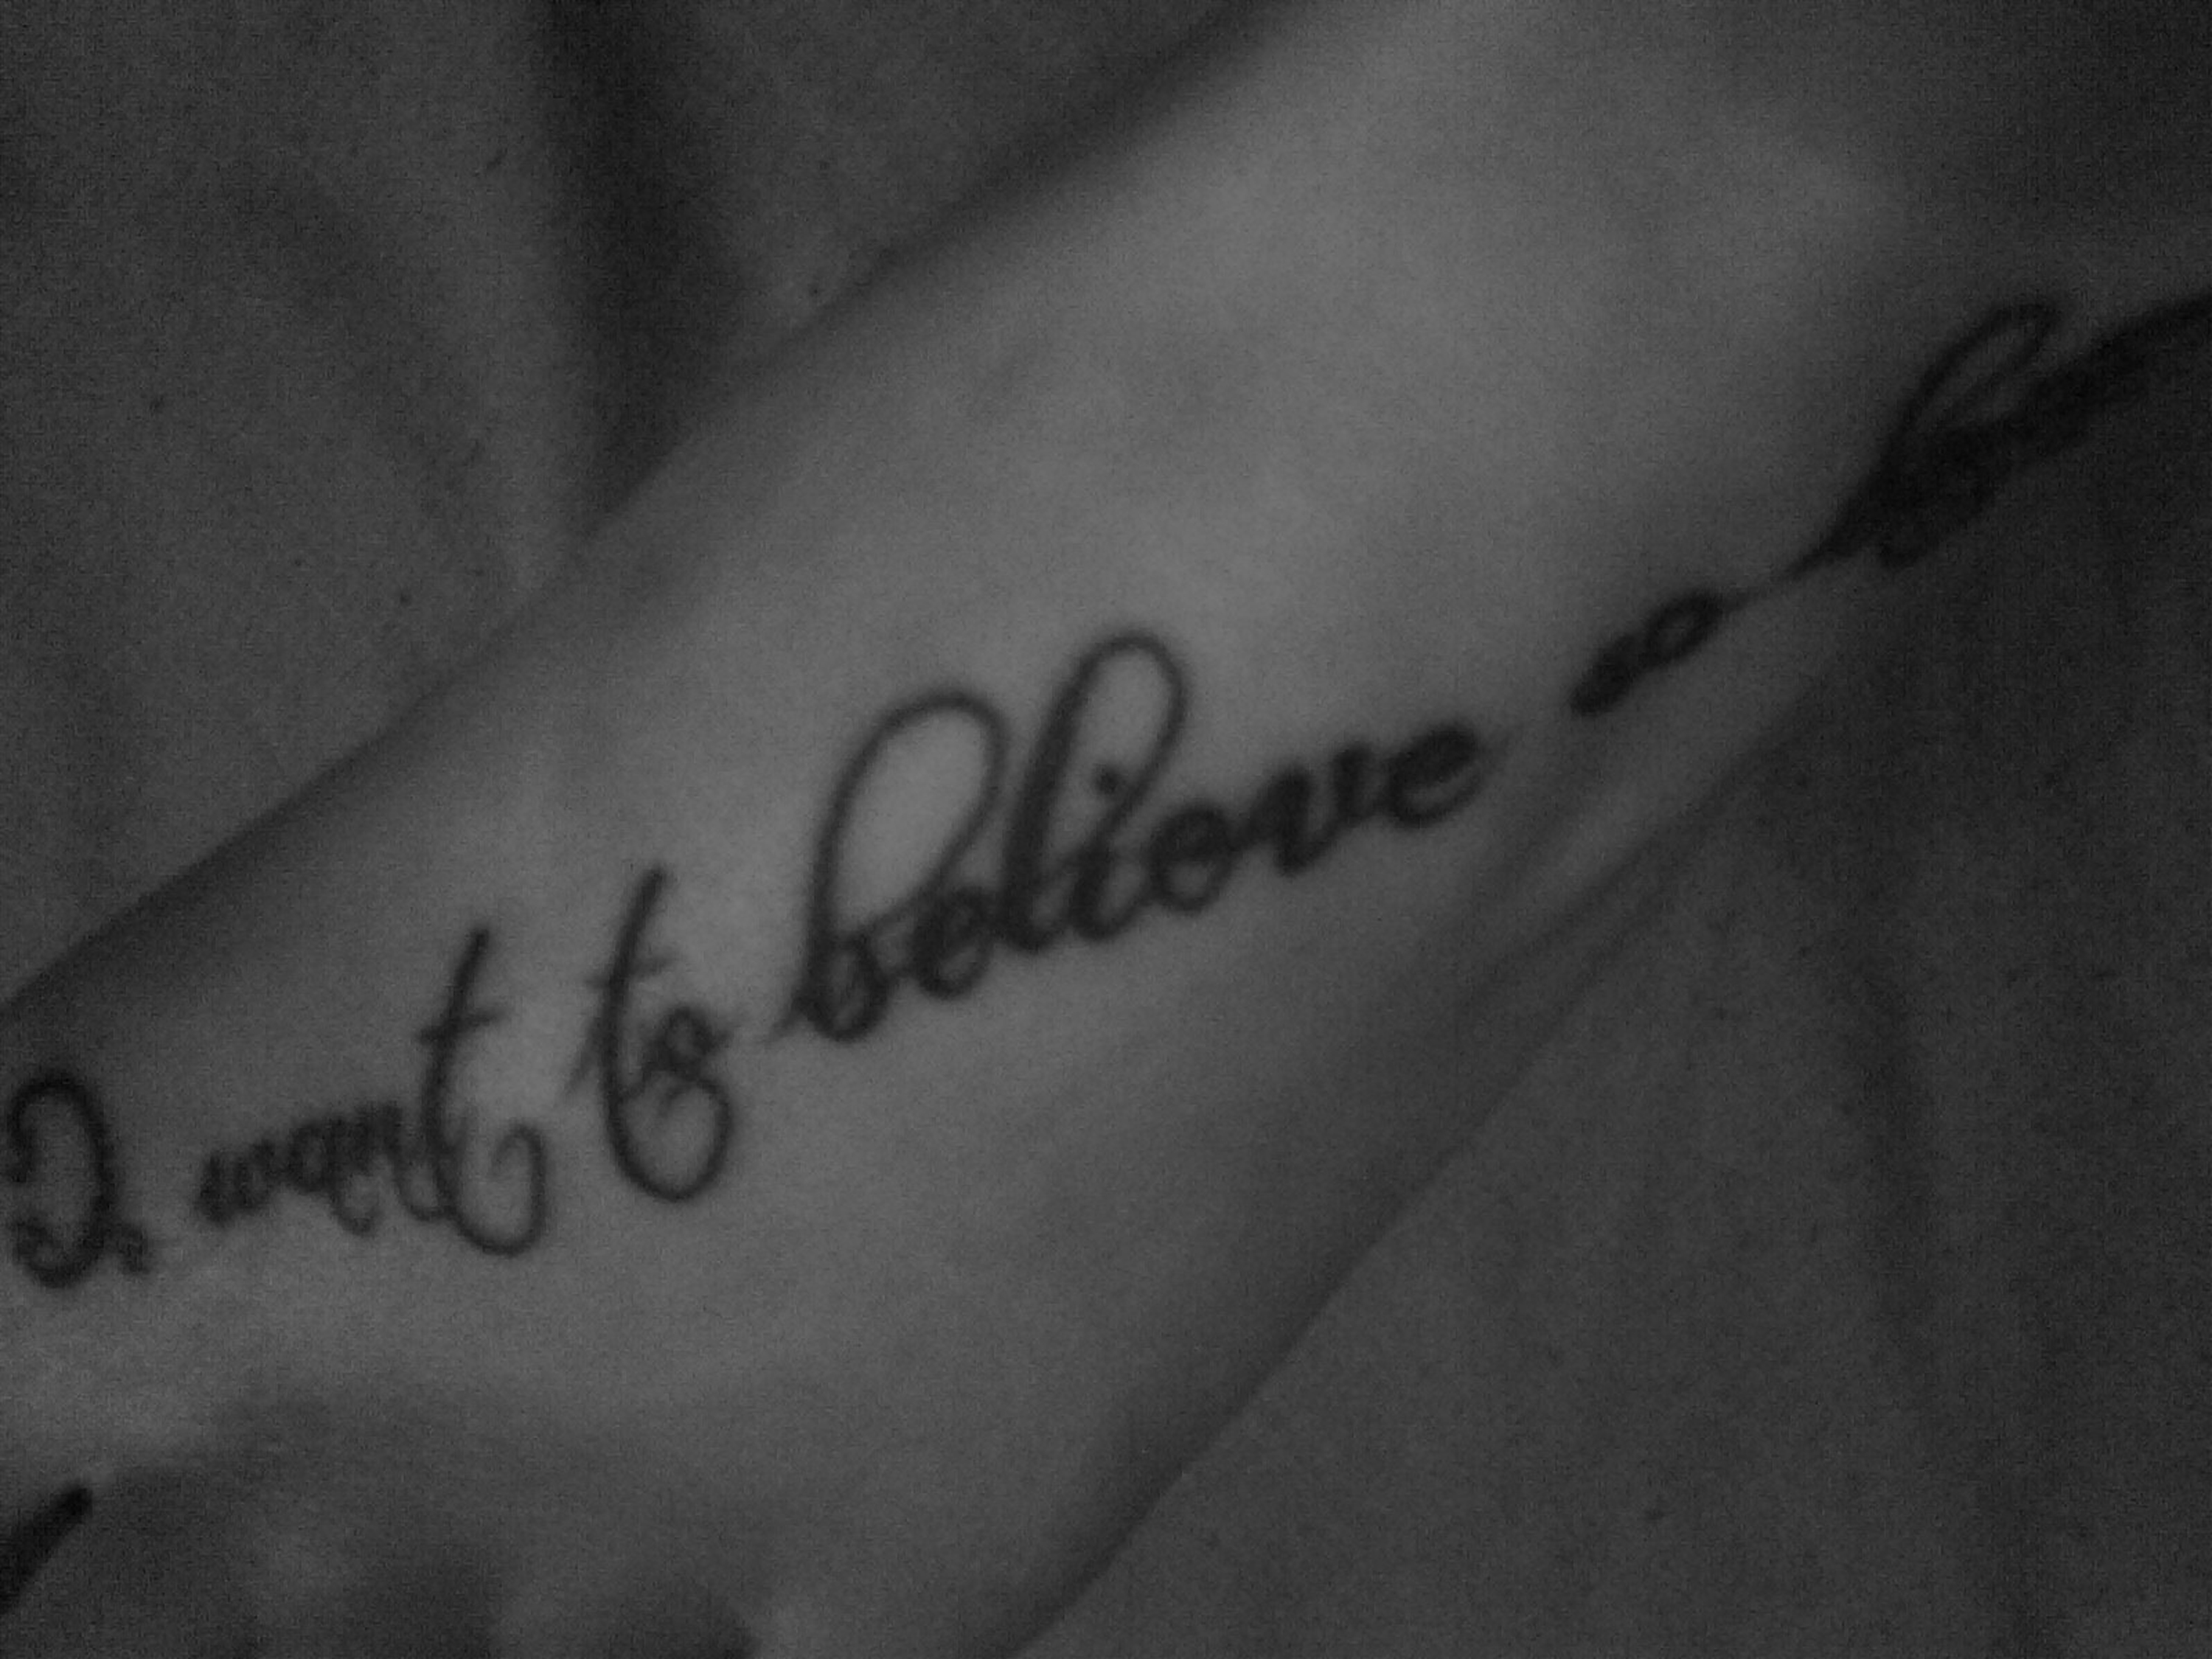 Foot Tattoo Beginning With I Want To Believe